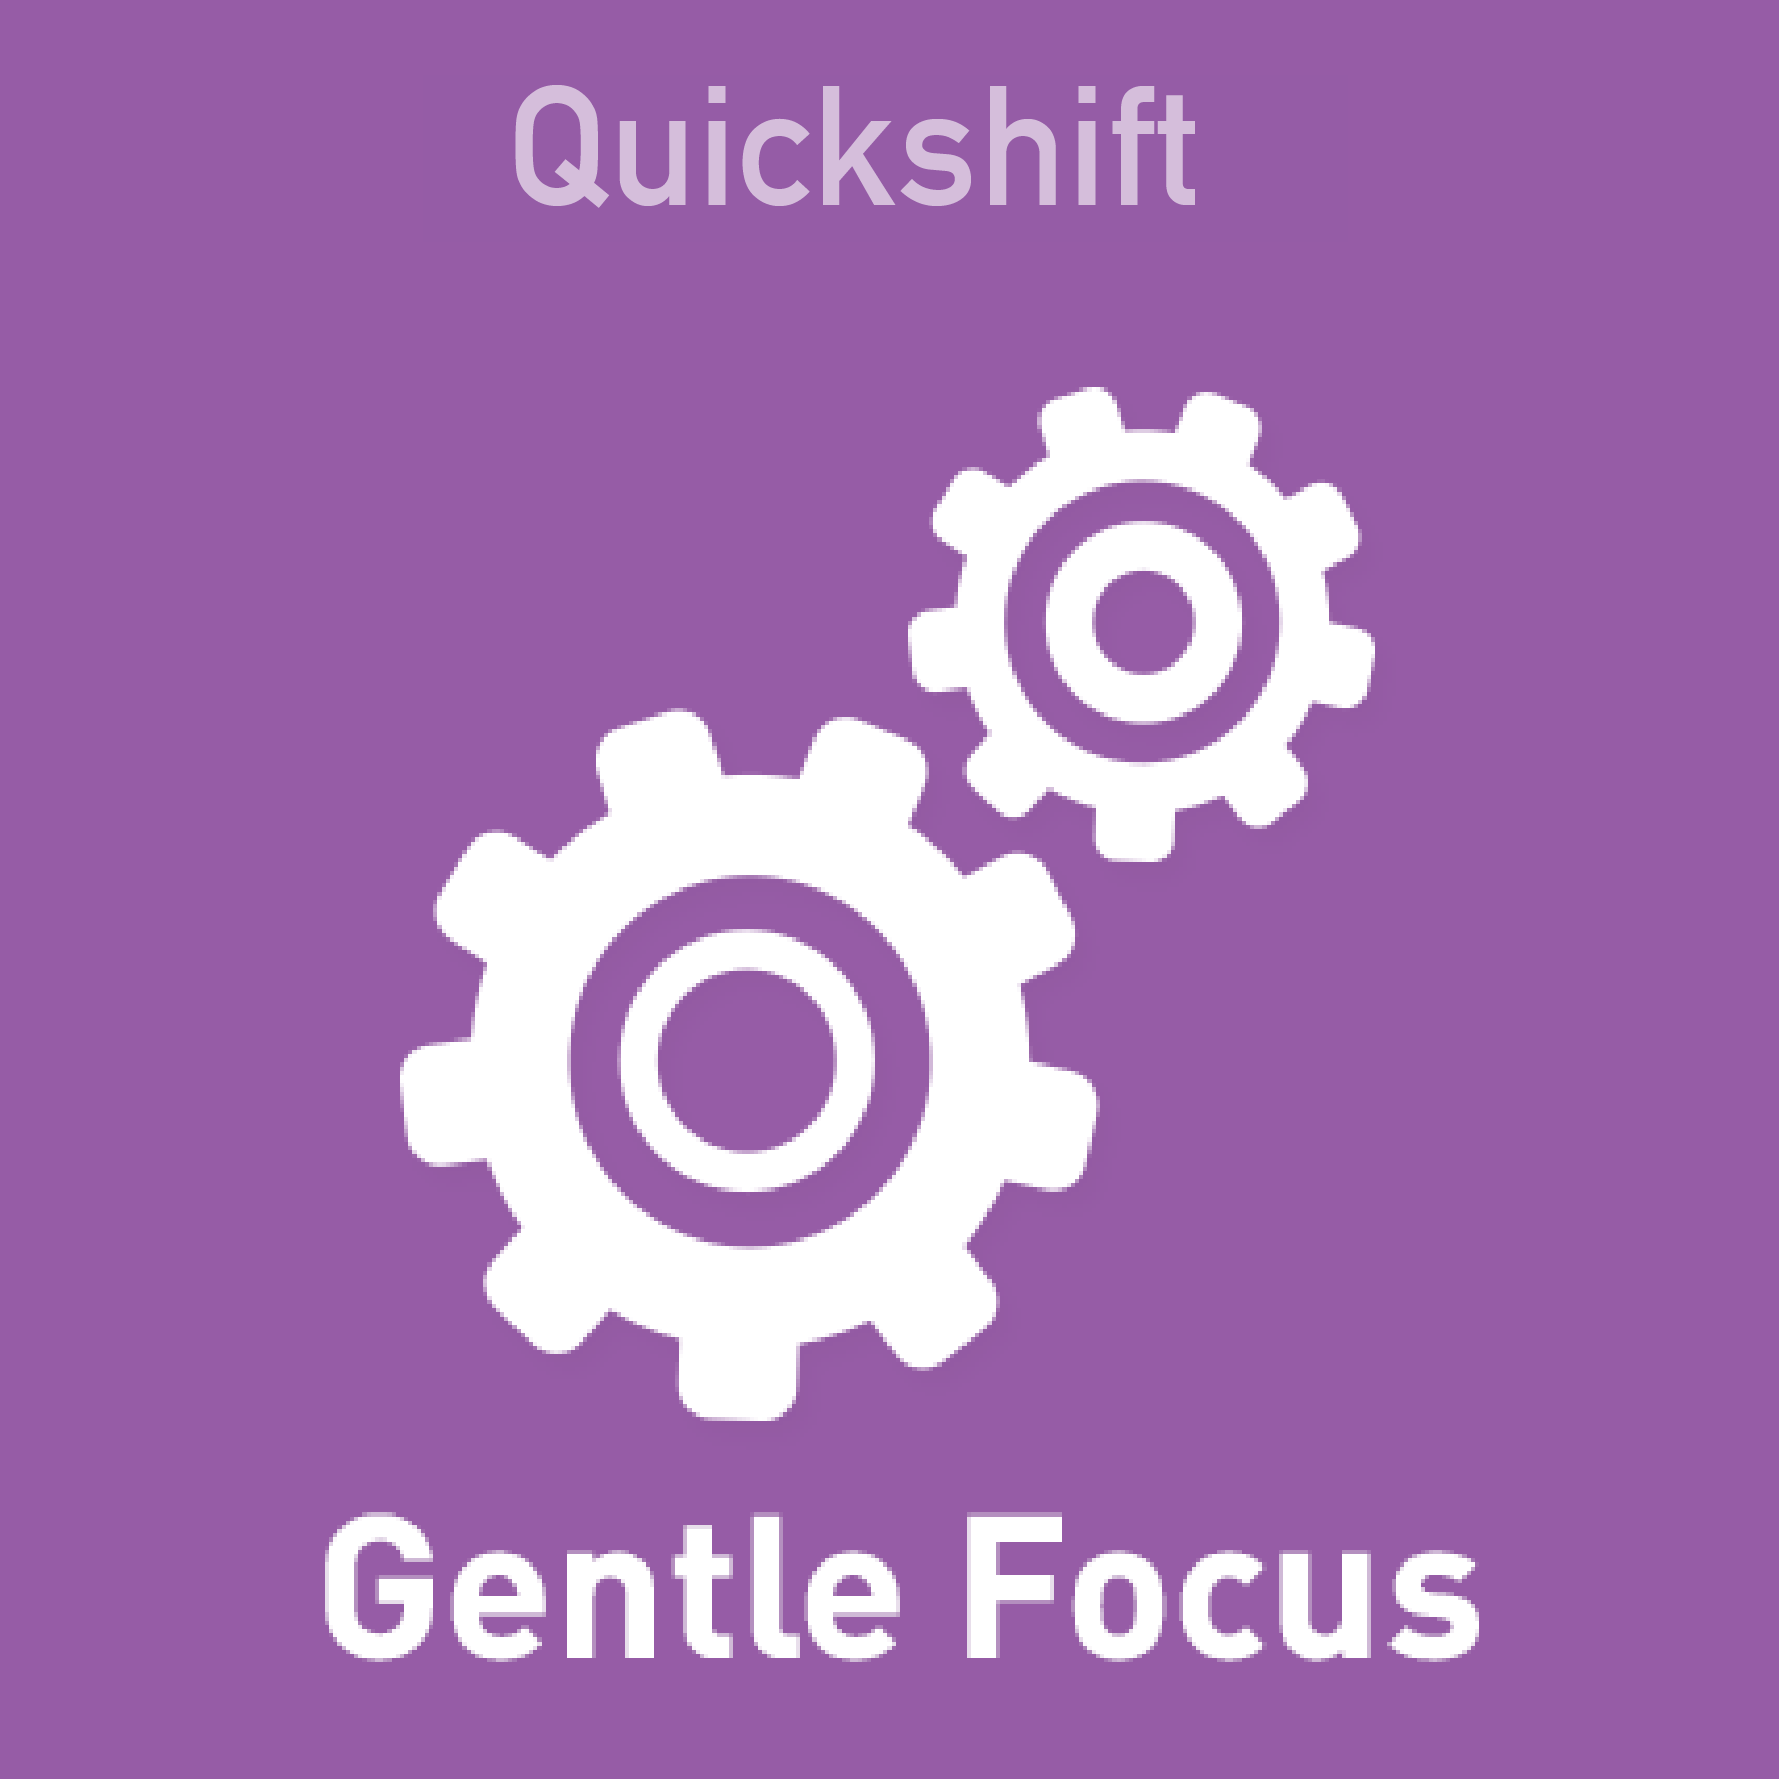 Quickshift - Gentle Focus